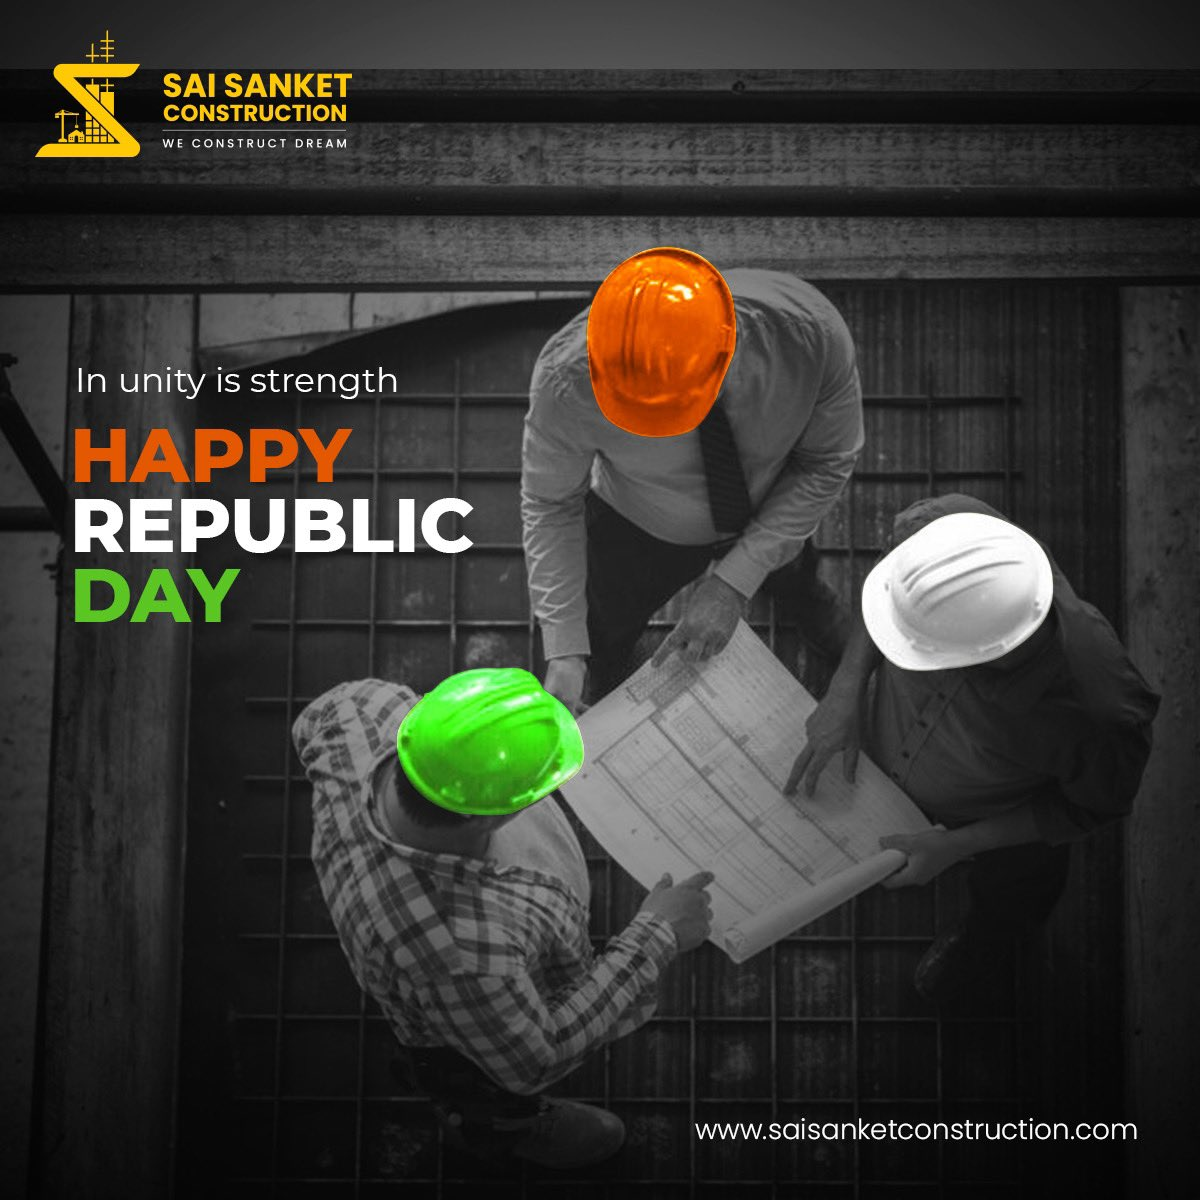 The Constitution of India and its values have been the driving force for this country and for our team. Sai Sanket Constructions wishes you all a very Happy Republic Day!   #SaiSanketConstructions #happymakarsankranti #DreamBigWithSaiSanketConstructions #WeConstructDreams